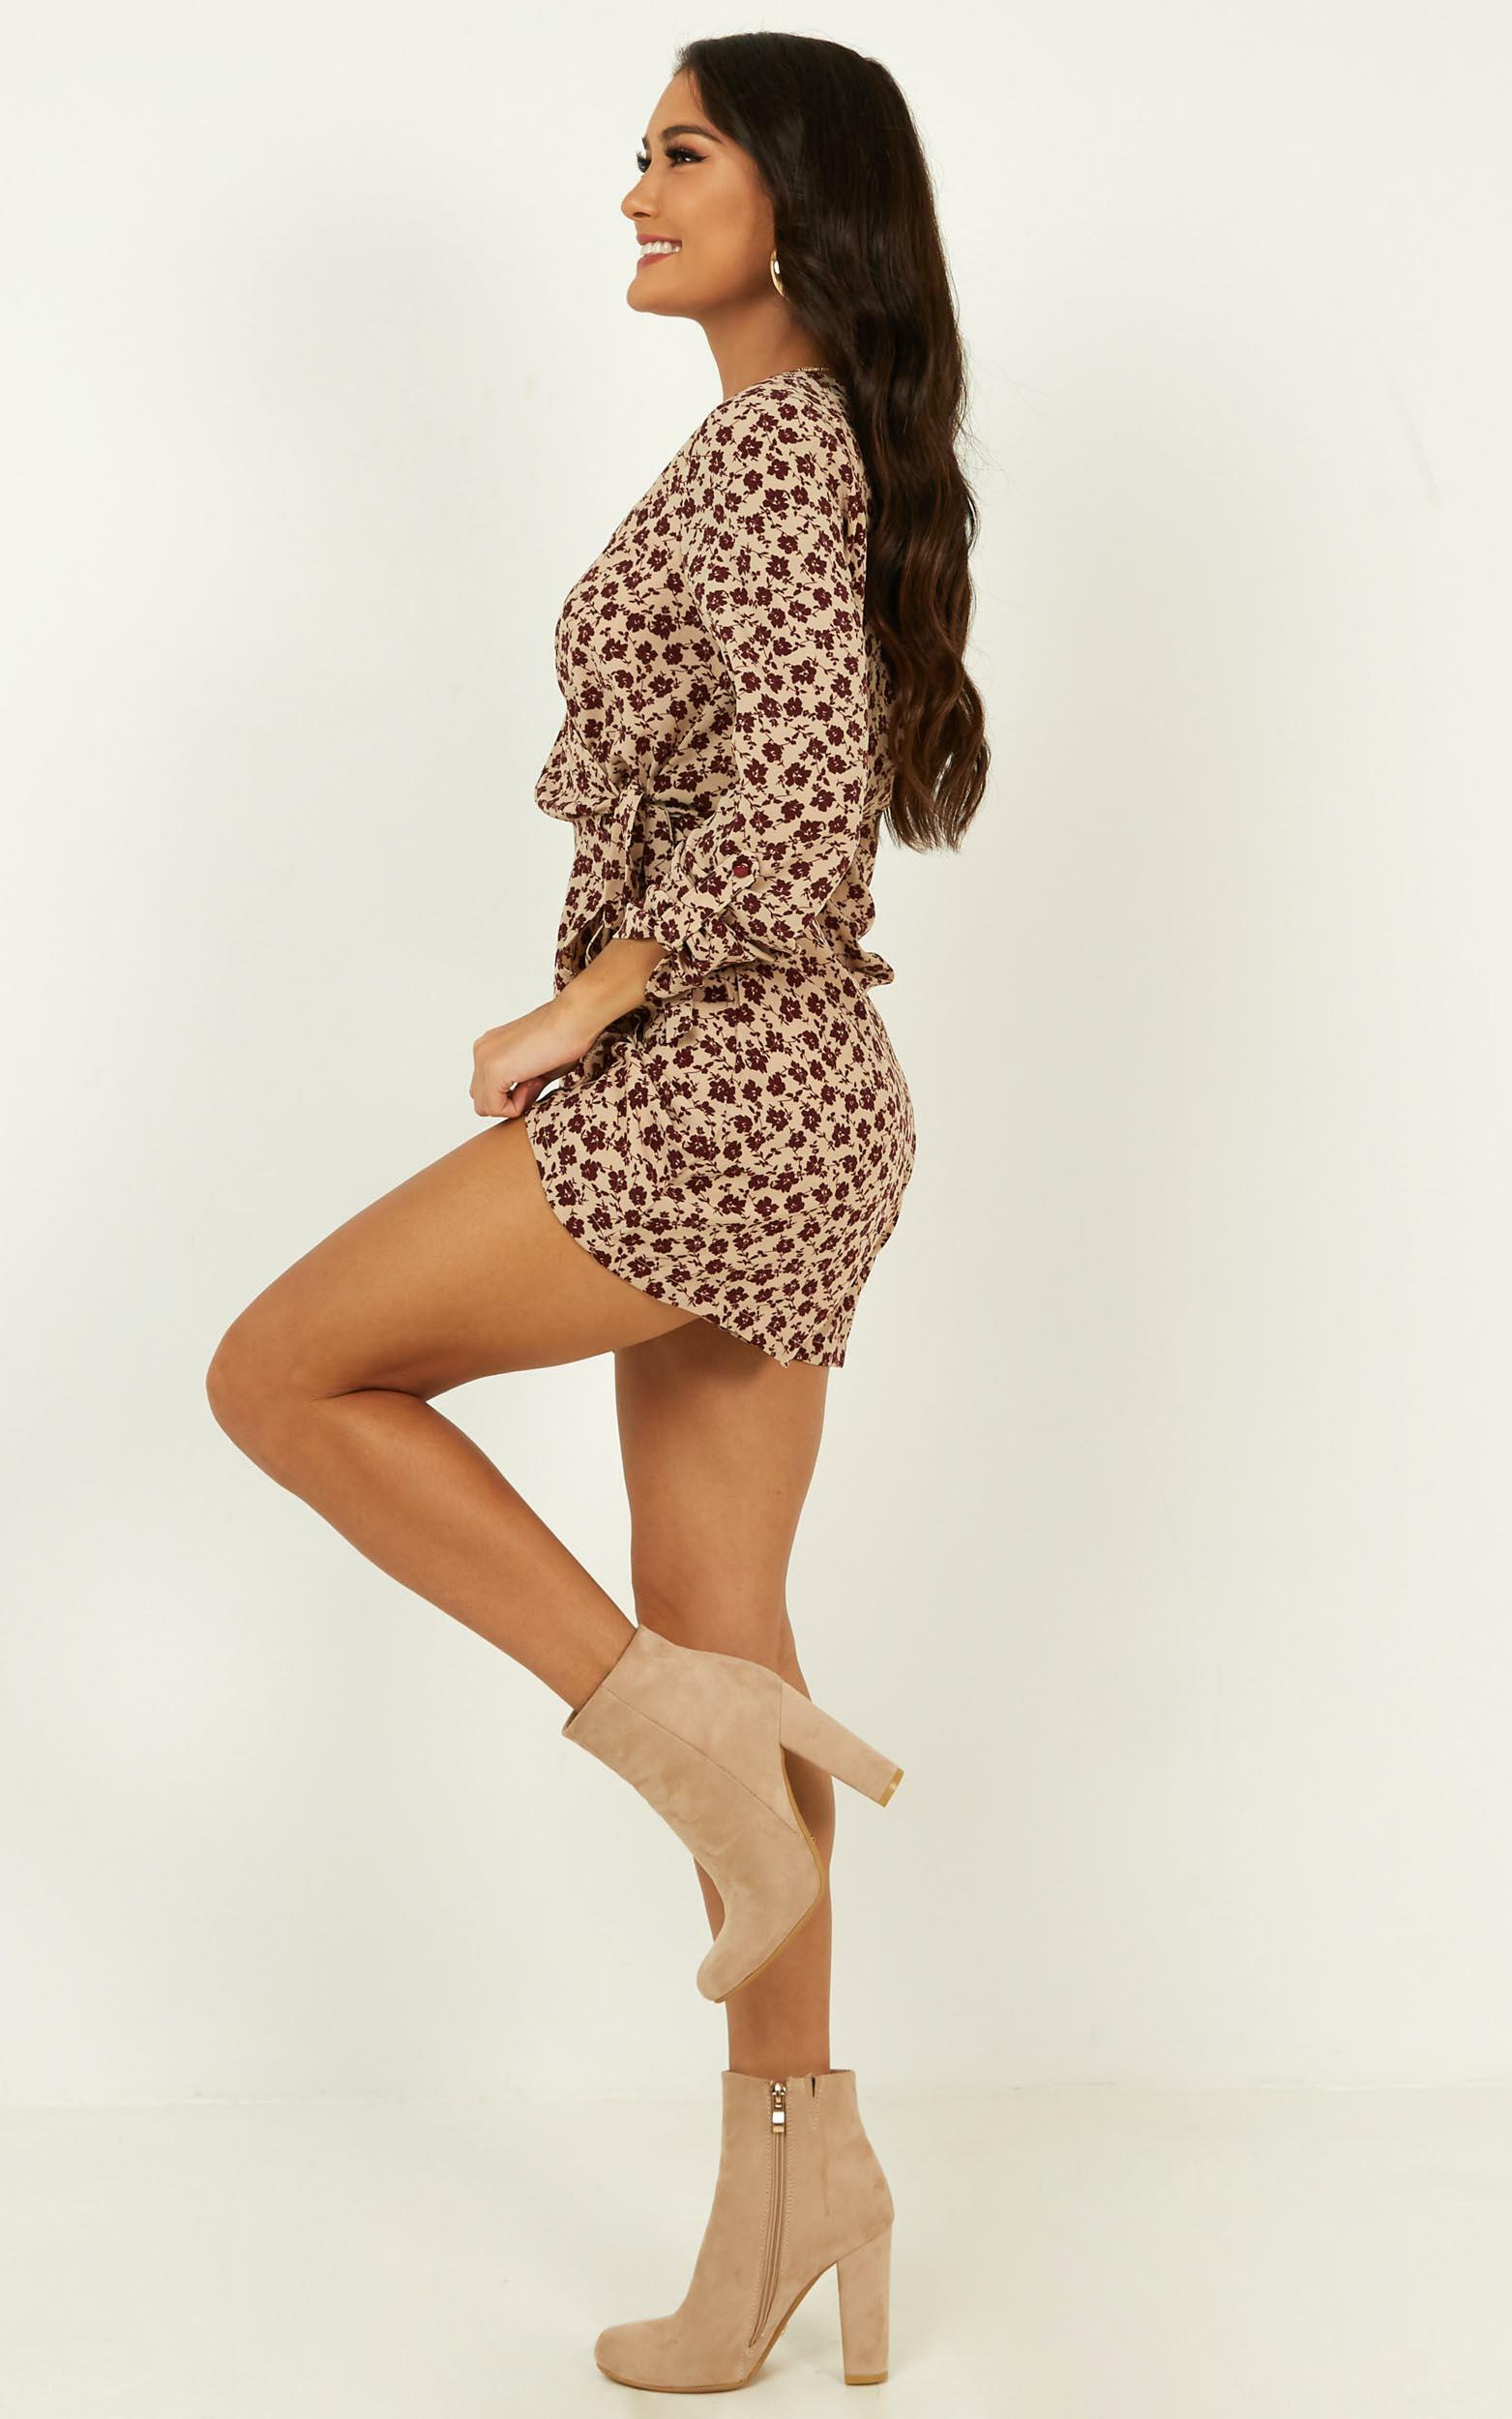 Sweetest Soul Playsuit in wine floral - 4 (XXS), Wine, hi-res image number null